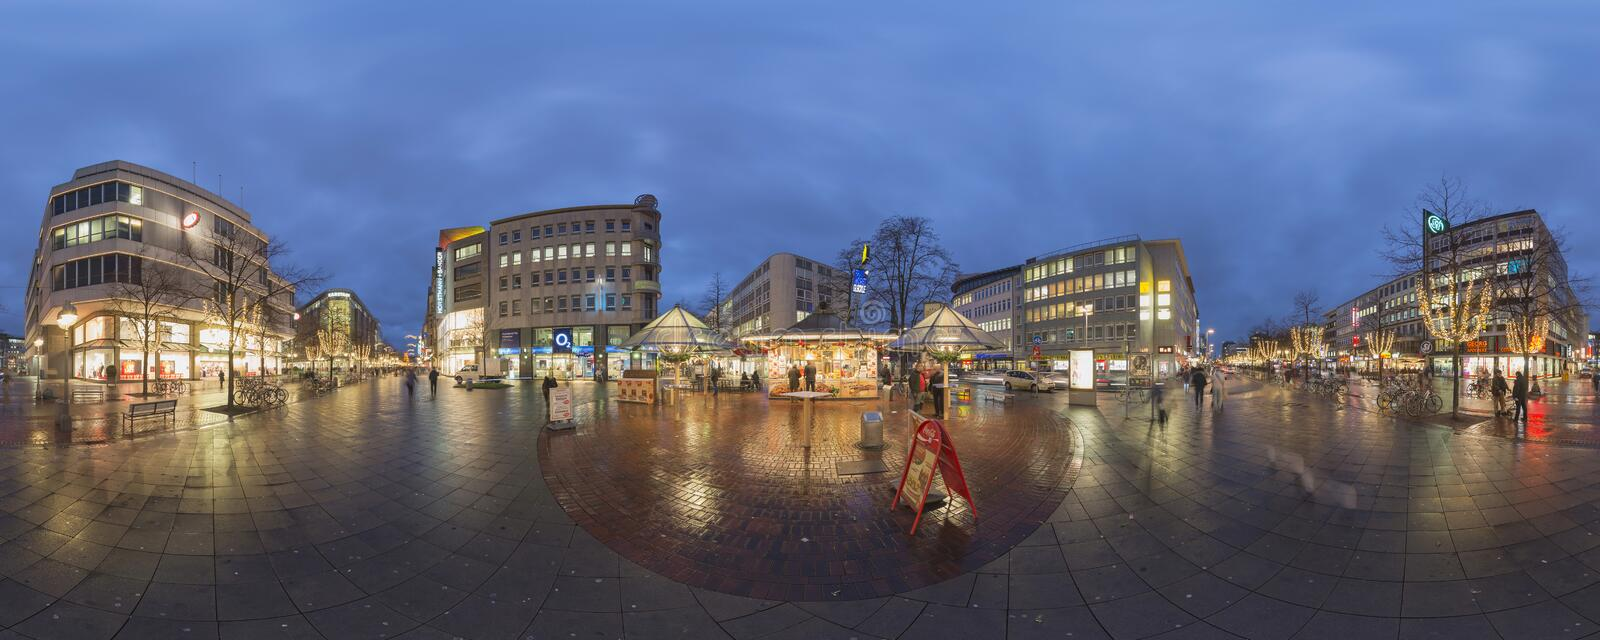 Christmas illumination in Hannover. HANNOVER, GERMANY - DECEMBER 18, 2014: Christmas illumination on streets in the center of Hannover. 360 degree panorama royalty free stock photo